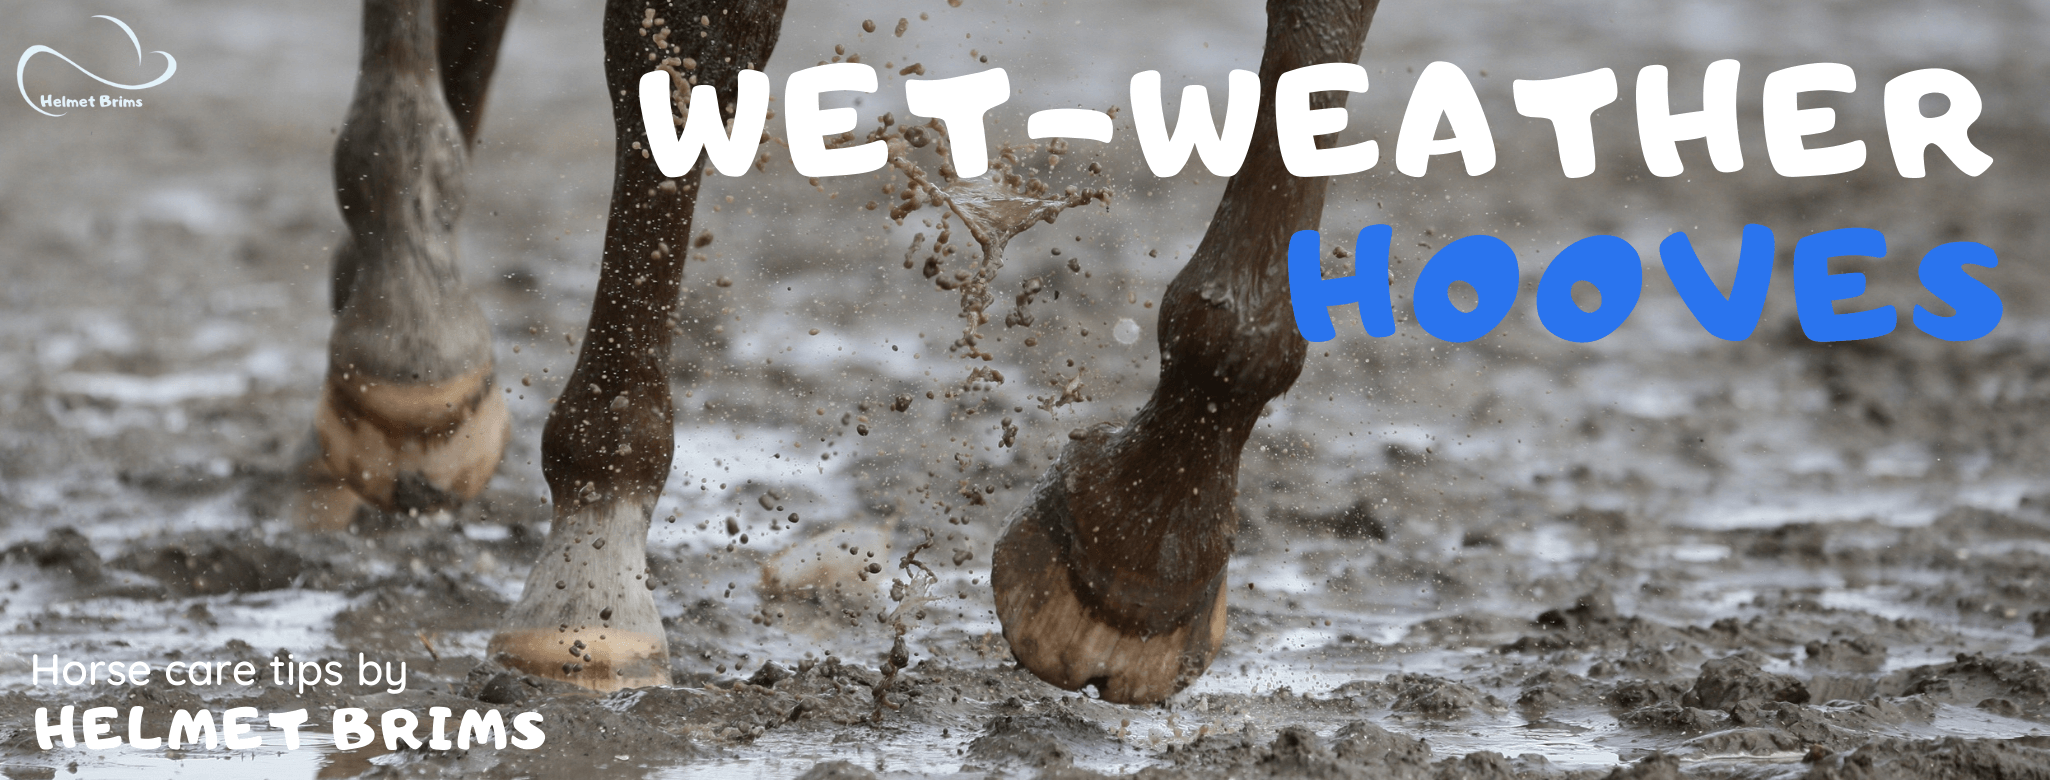 Wet weather hoof care for horses fungus mould thrush treatment